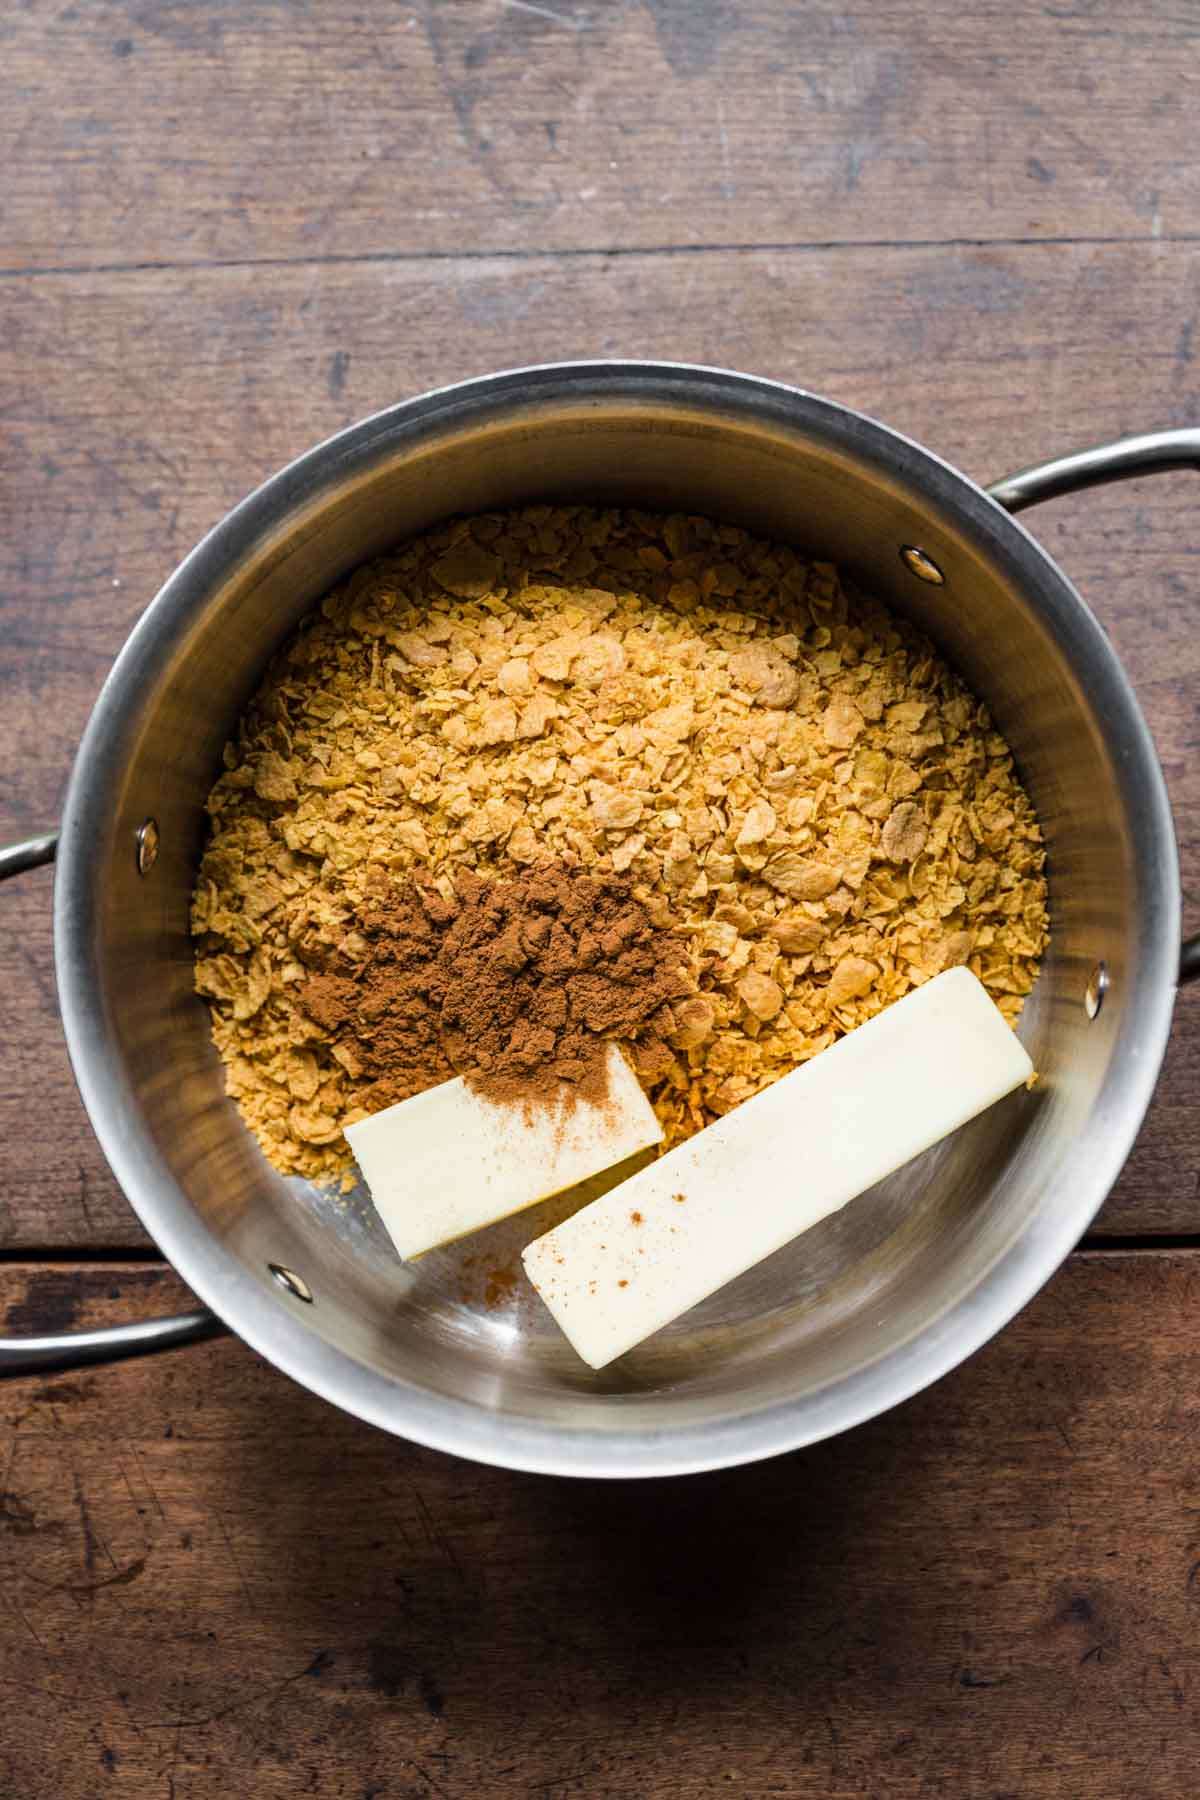 Butter and cornflakes in saucepan for Fried Ice Cream Dessert Casserole